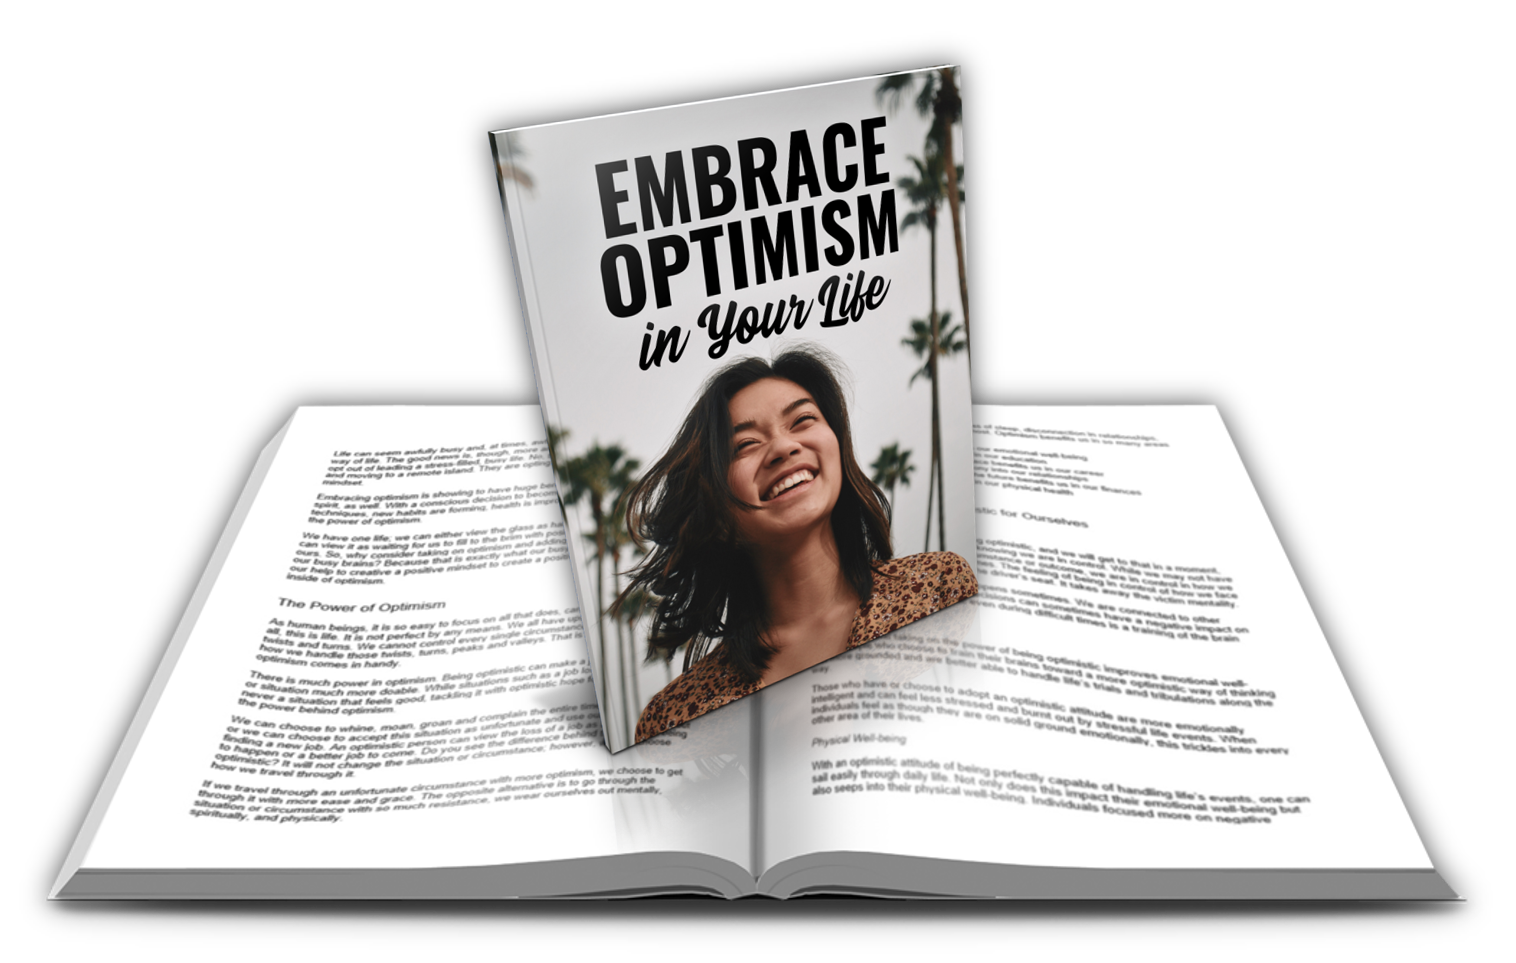 How to Embrace Optimism Report Image 2